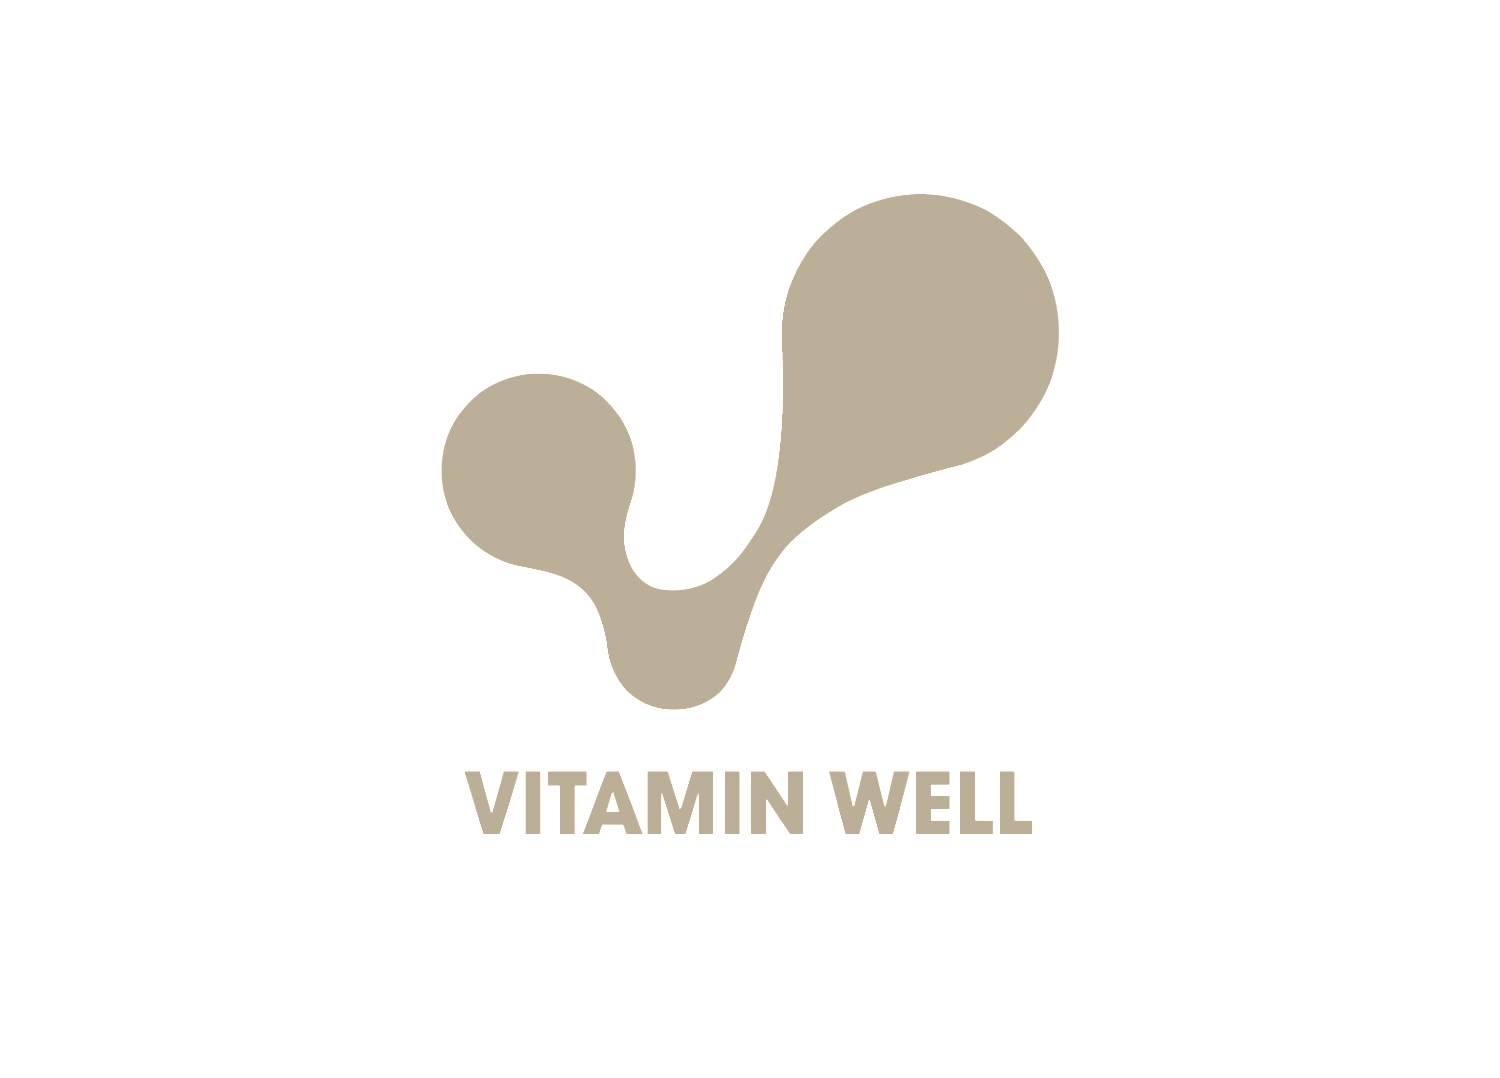 vitaminwell_logo-fri_edited.png